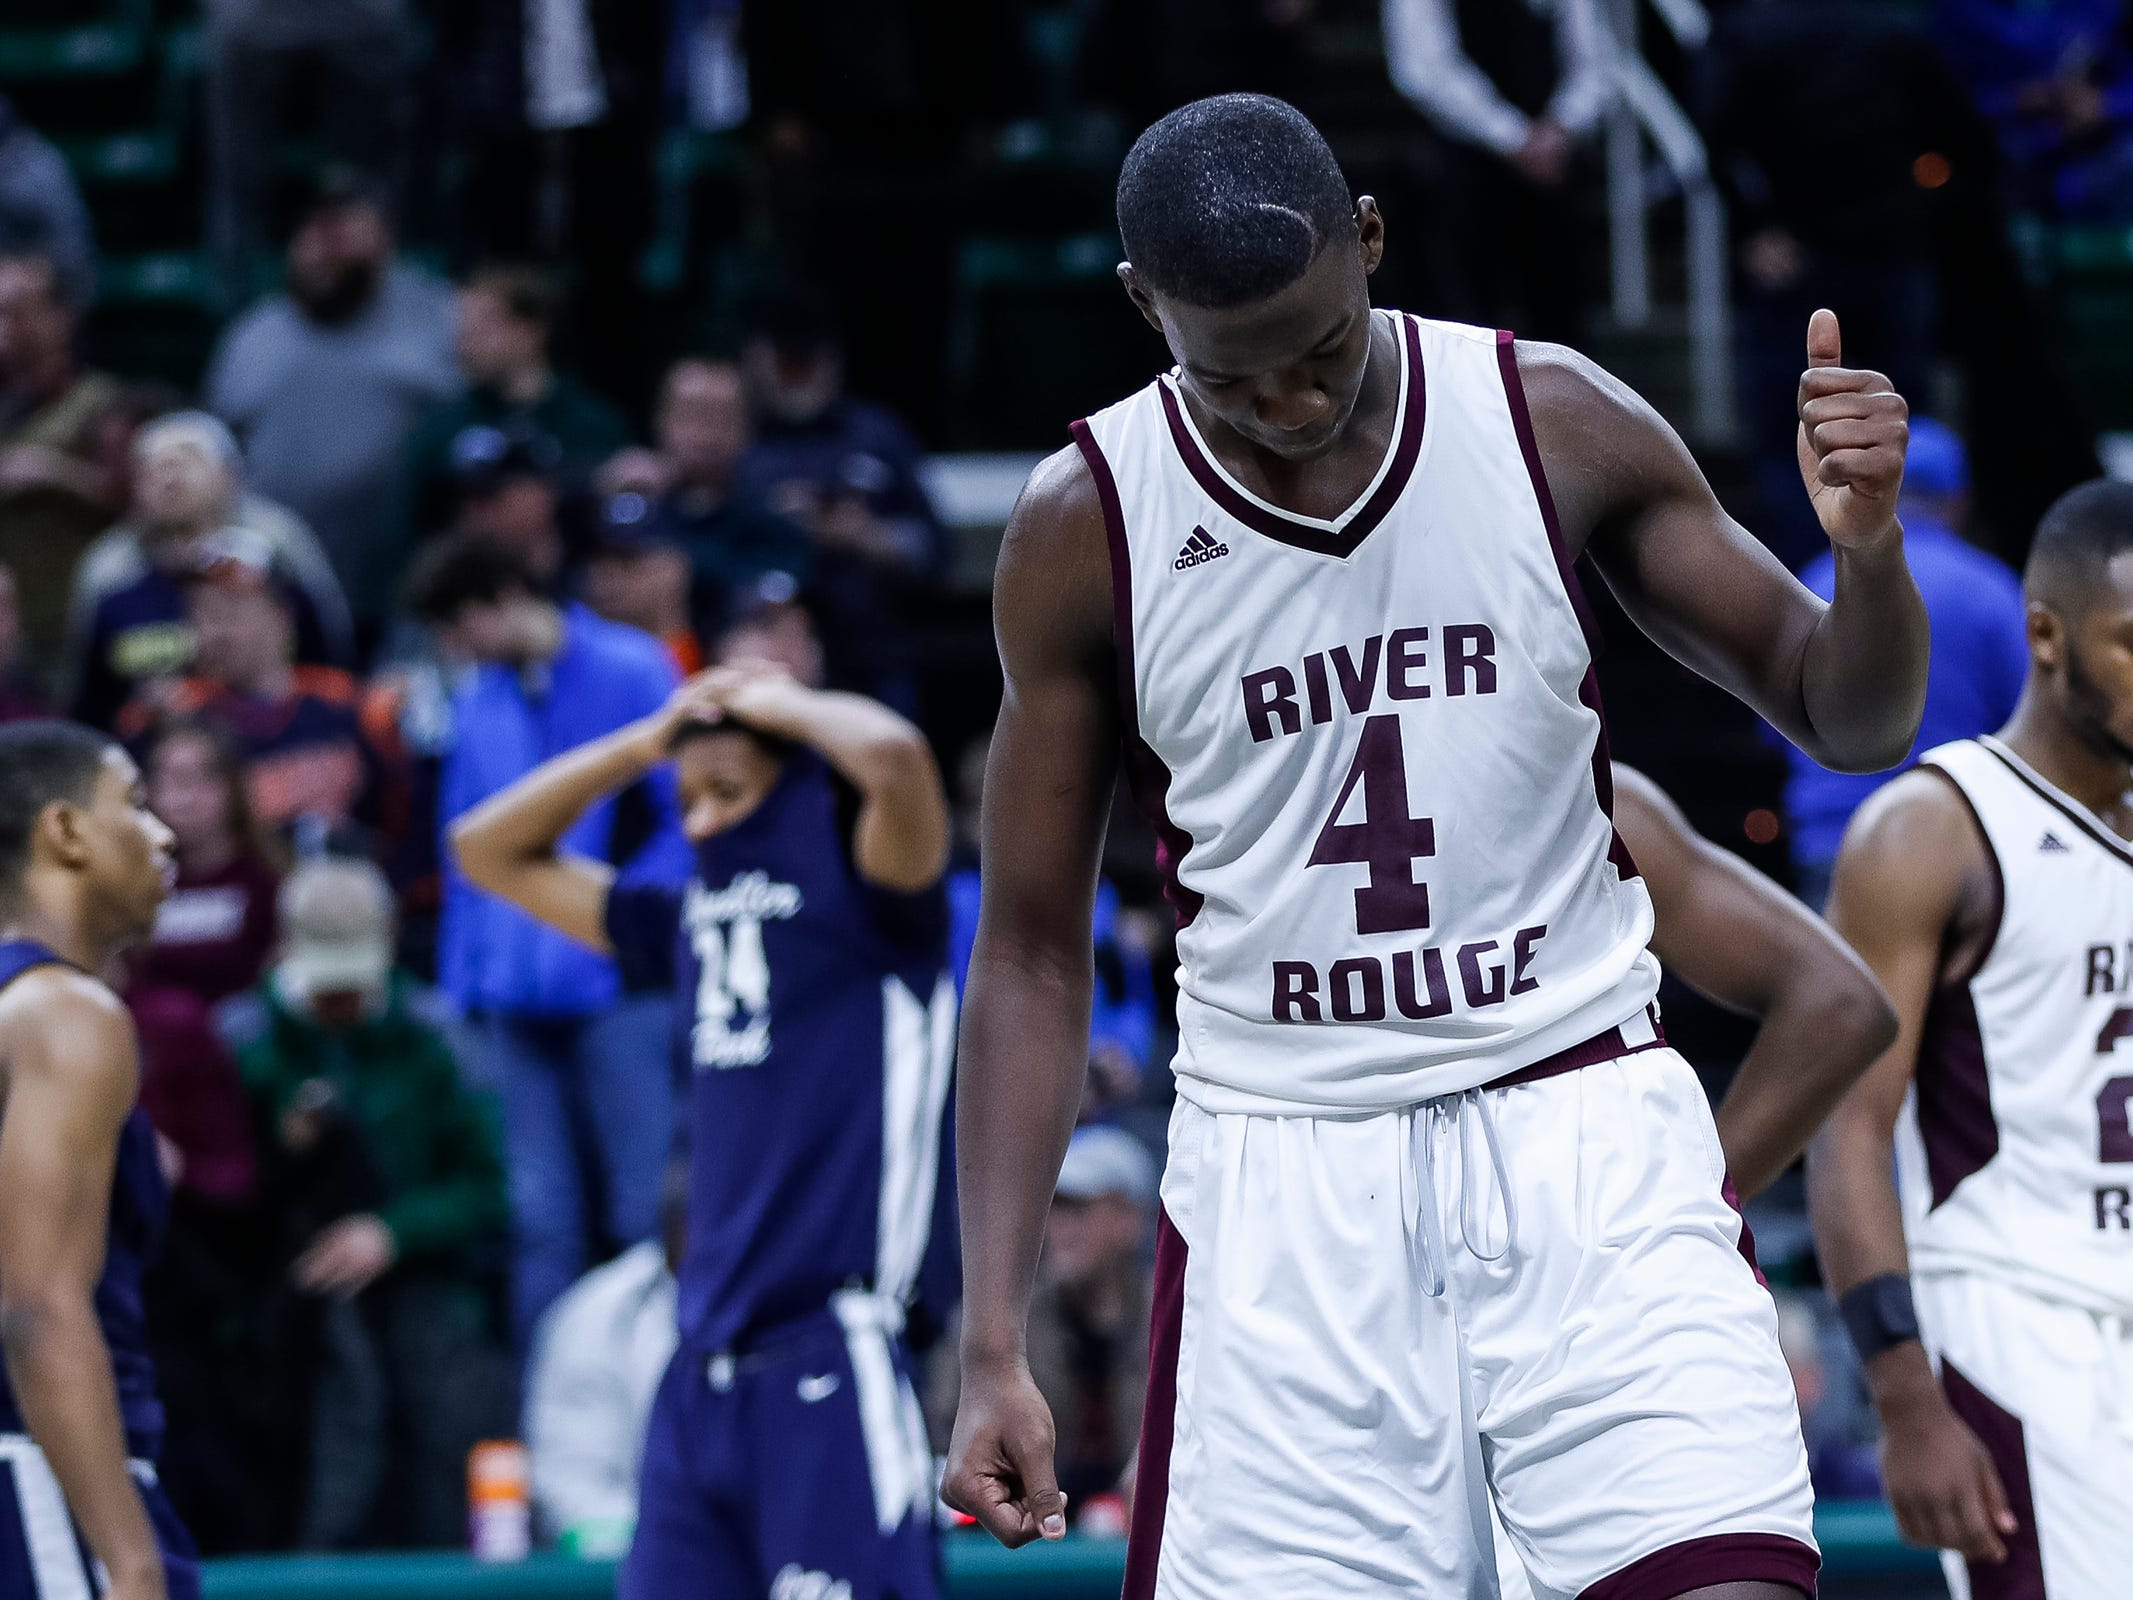 River Rouge's Legend Geeter (4) gives a thumb up as he waits for the last seconds of the game to expire in overtime win over Harper Woods Chandler Park at MHSAA Division 2 semifinal at the Breslin Center in East Lansing, Friday, March 15, 2019.